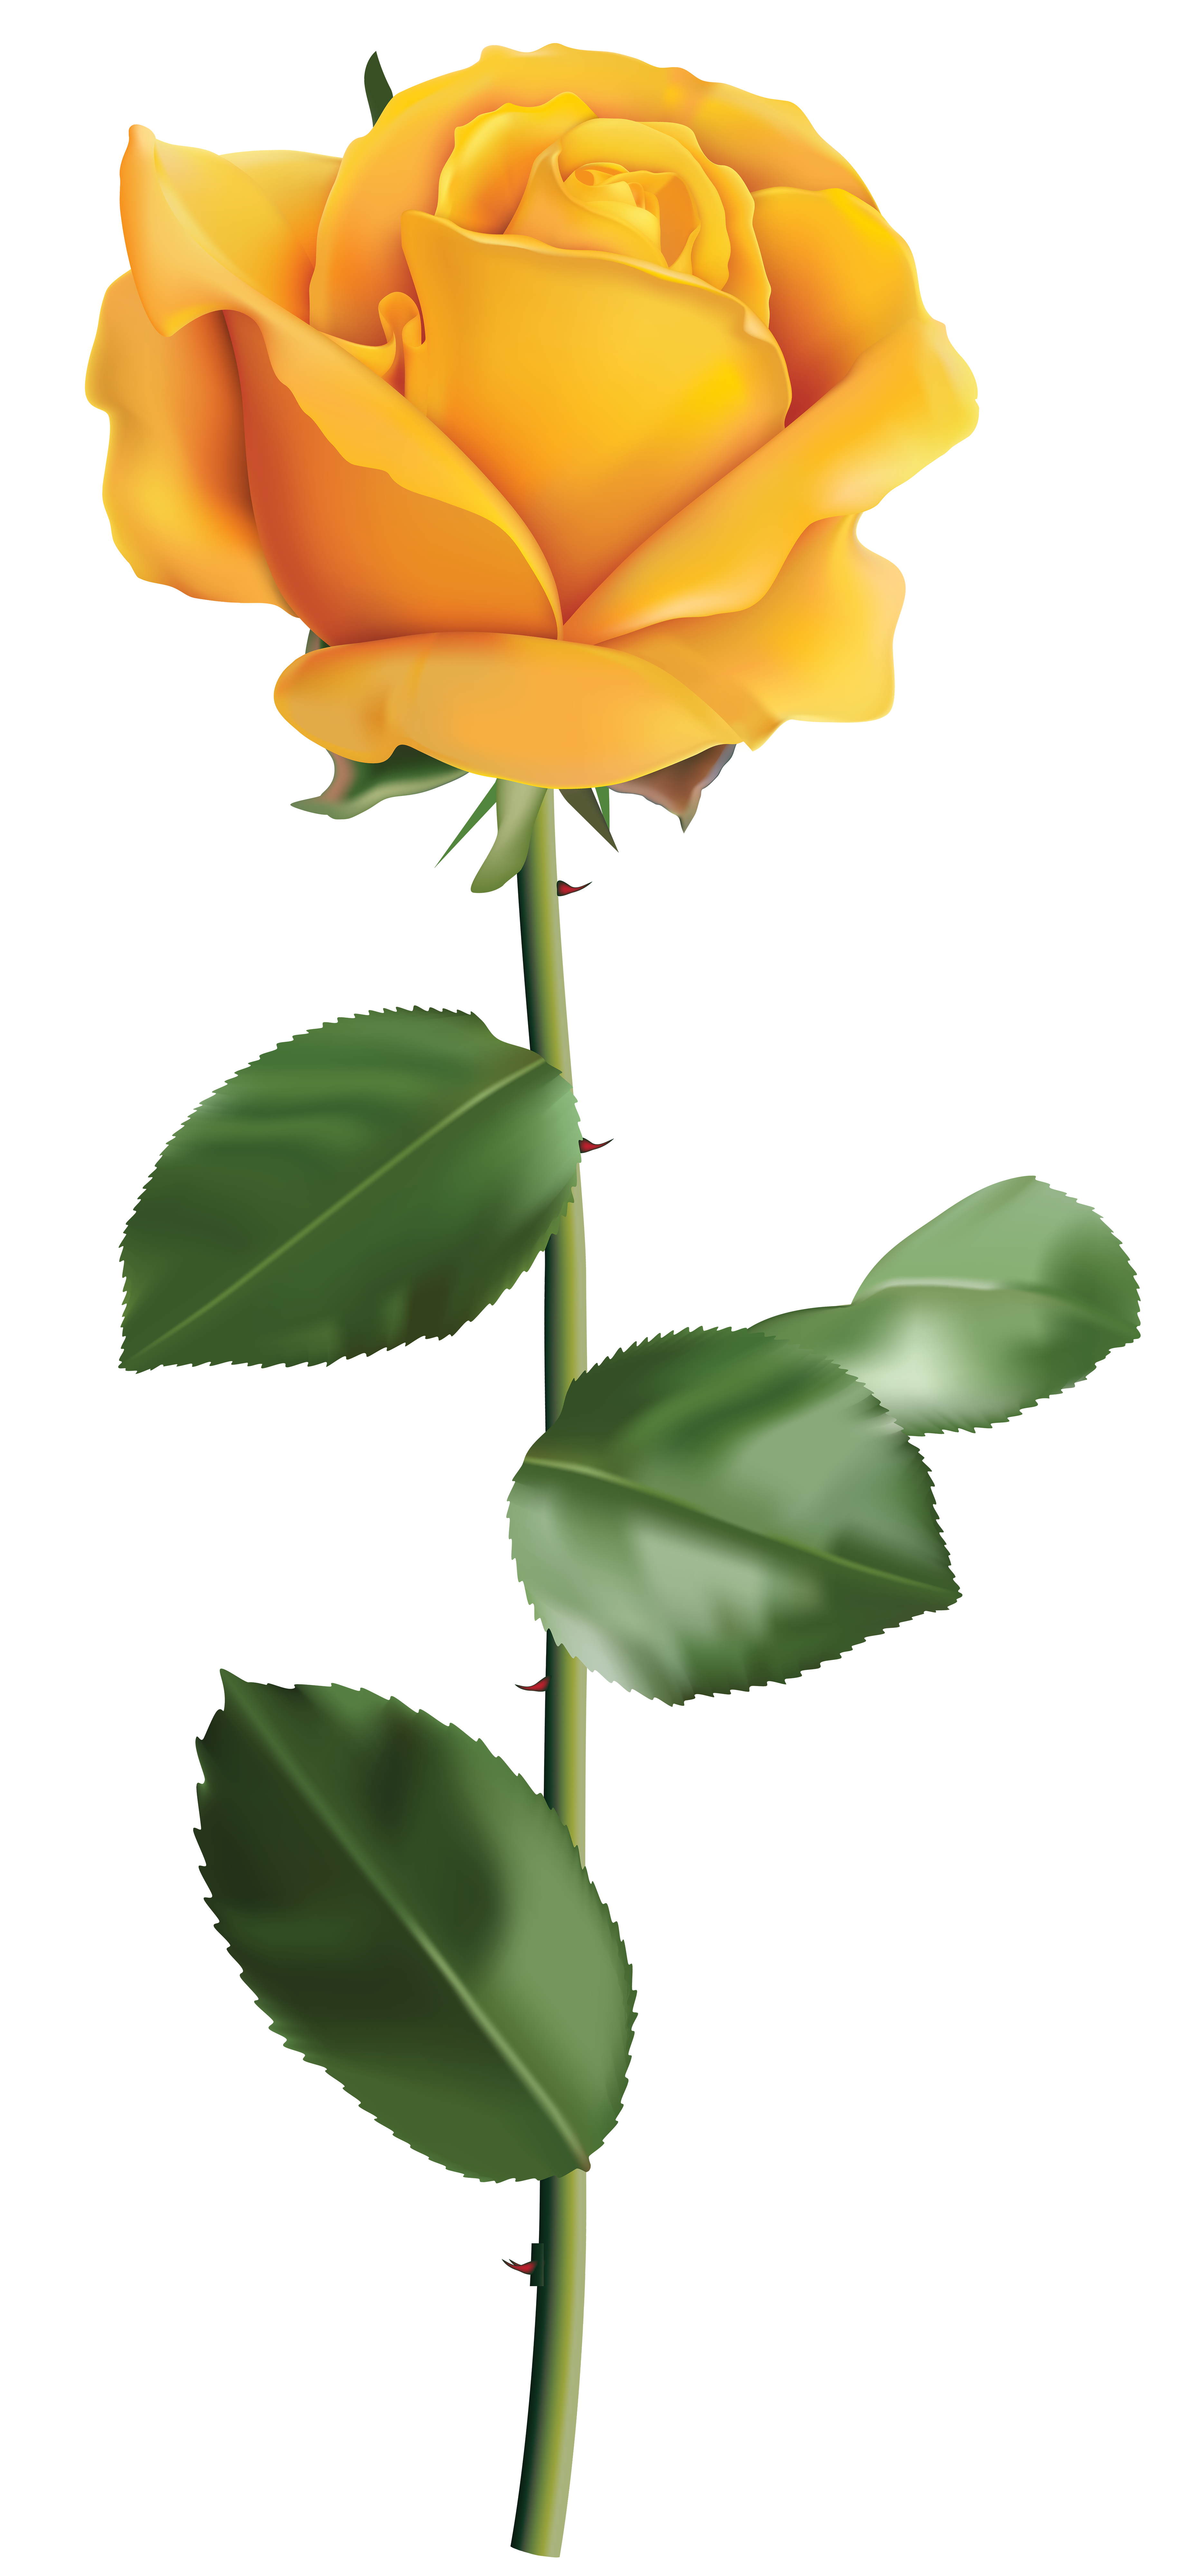 rose clipart yellow rose